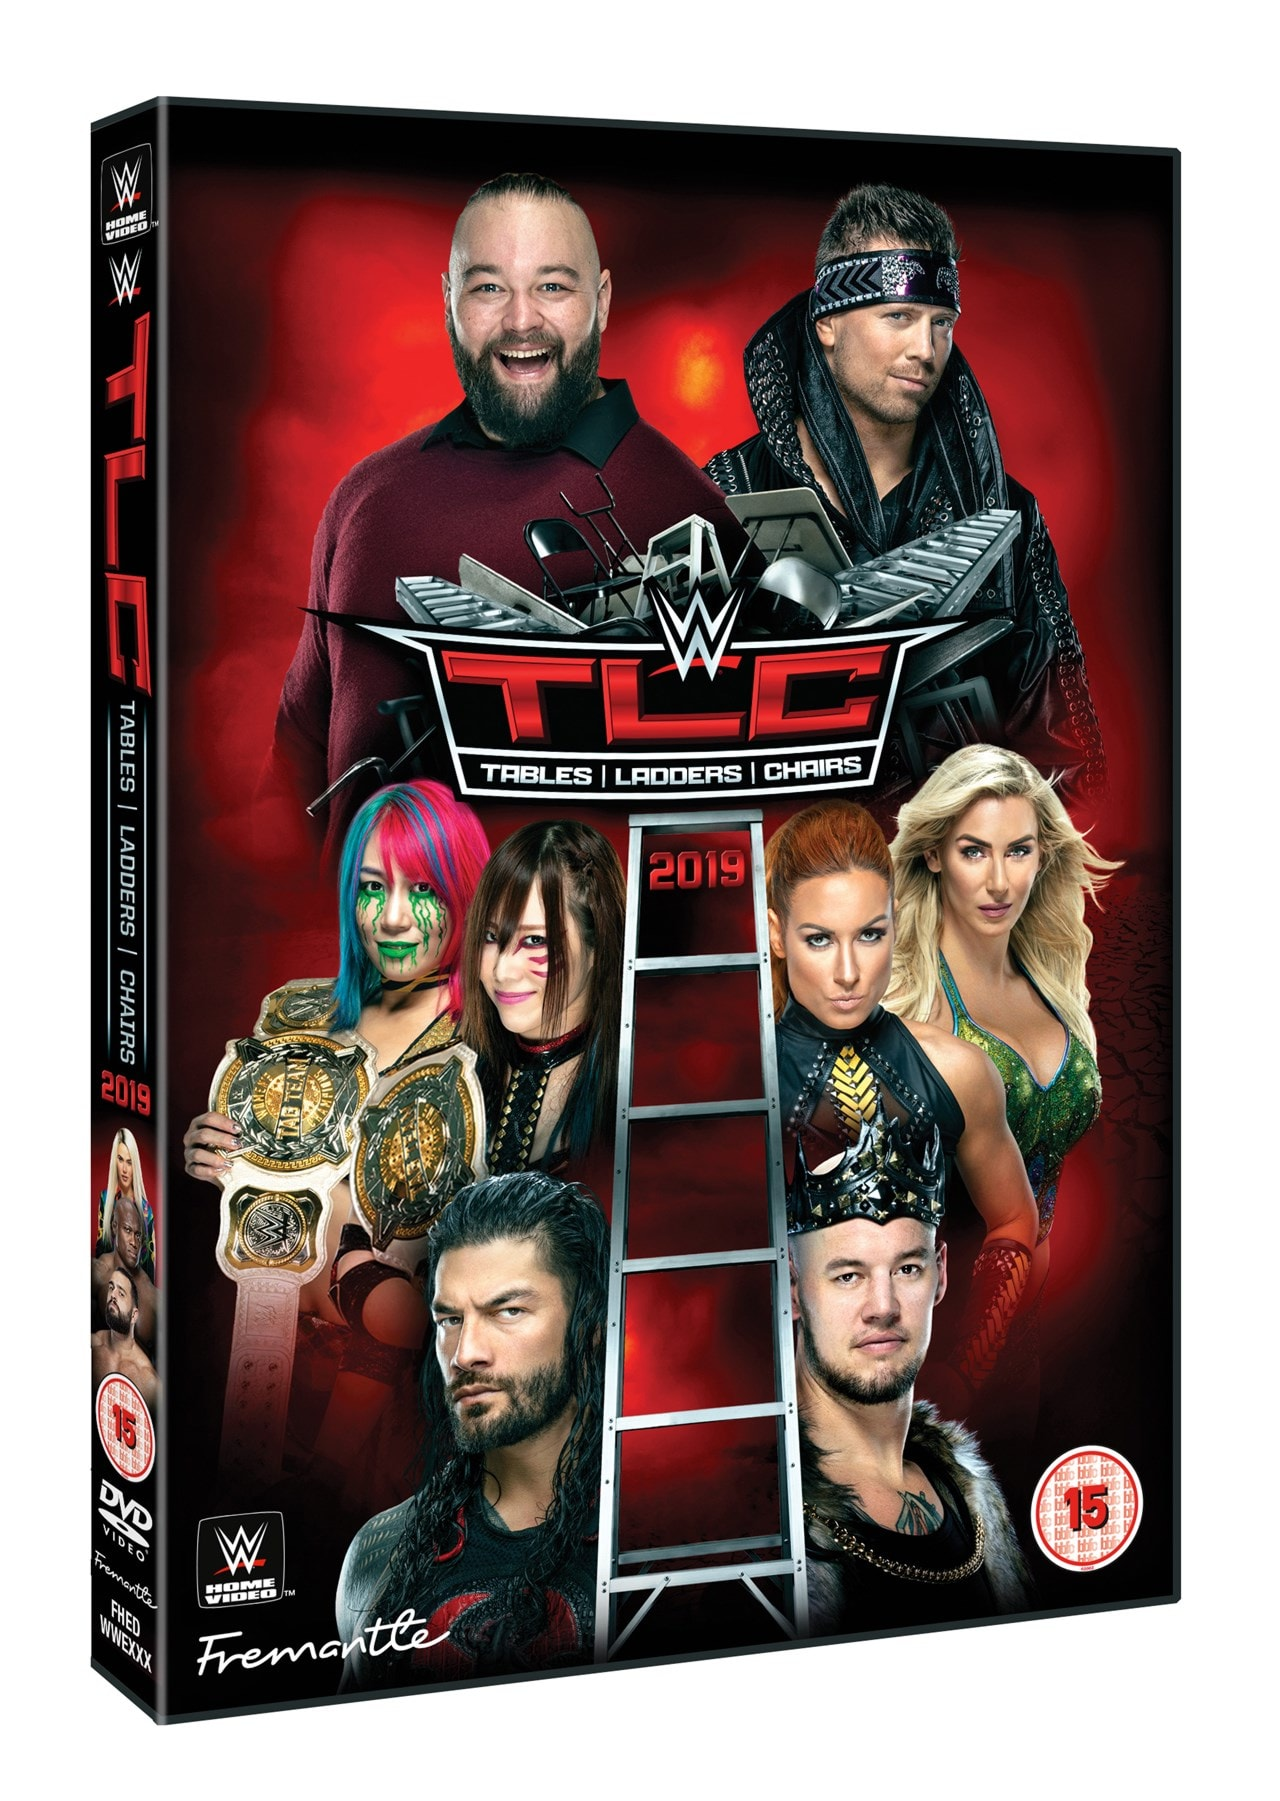 WWE: TLC - Tables/Ladders/Chairs 2019 - 2